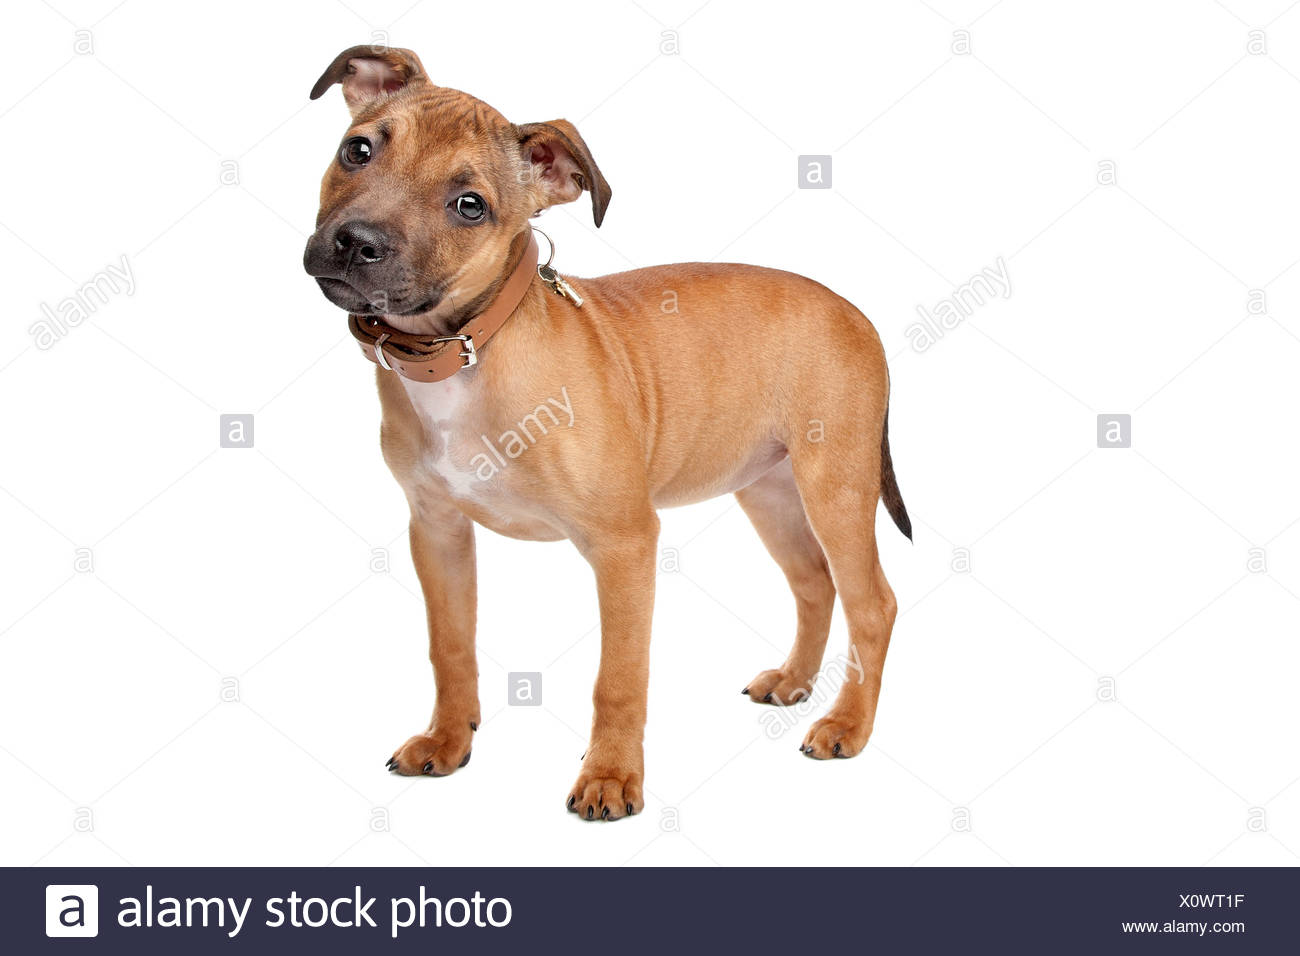 Staffordshire Bull Terrier puppy in front of a white background - Stock Image